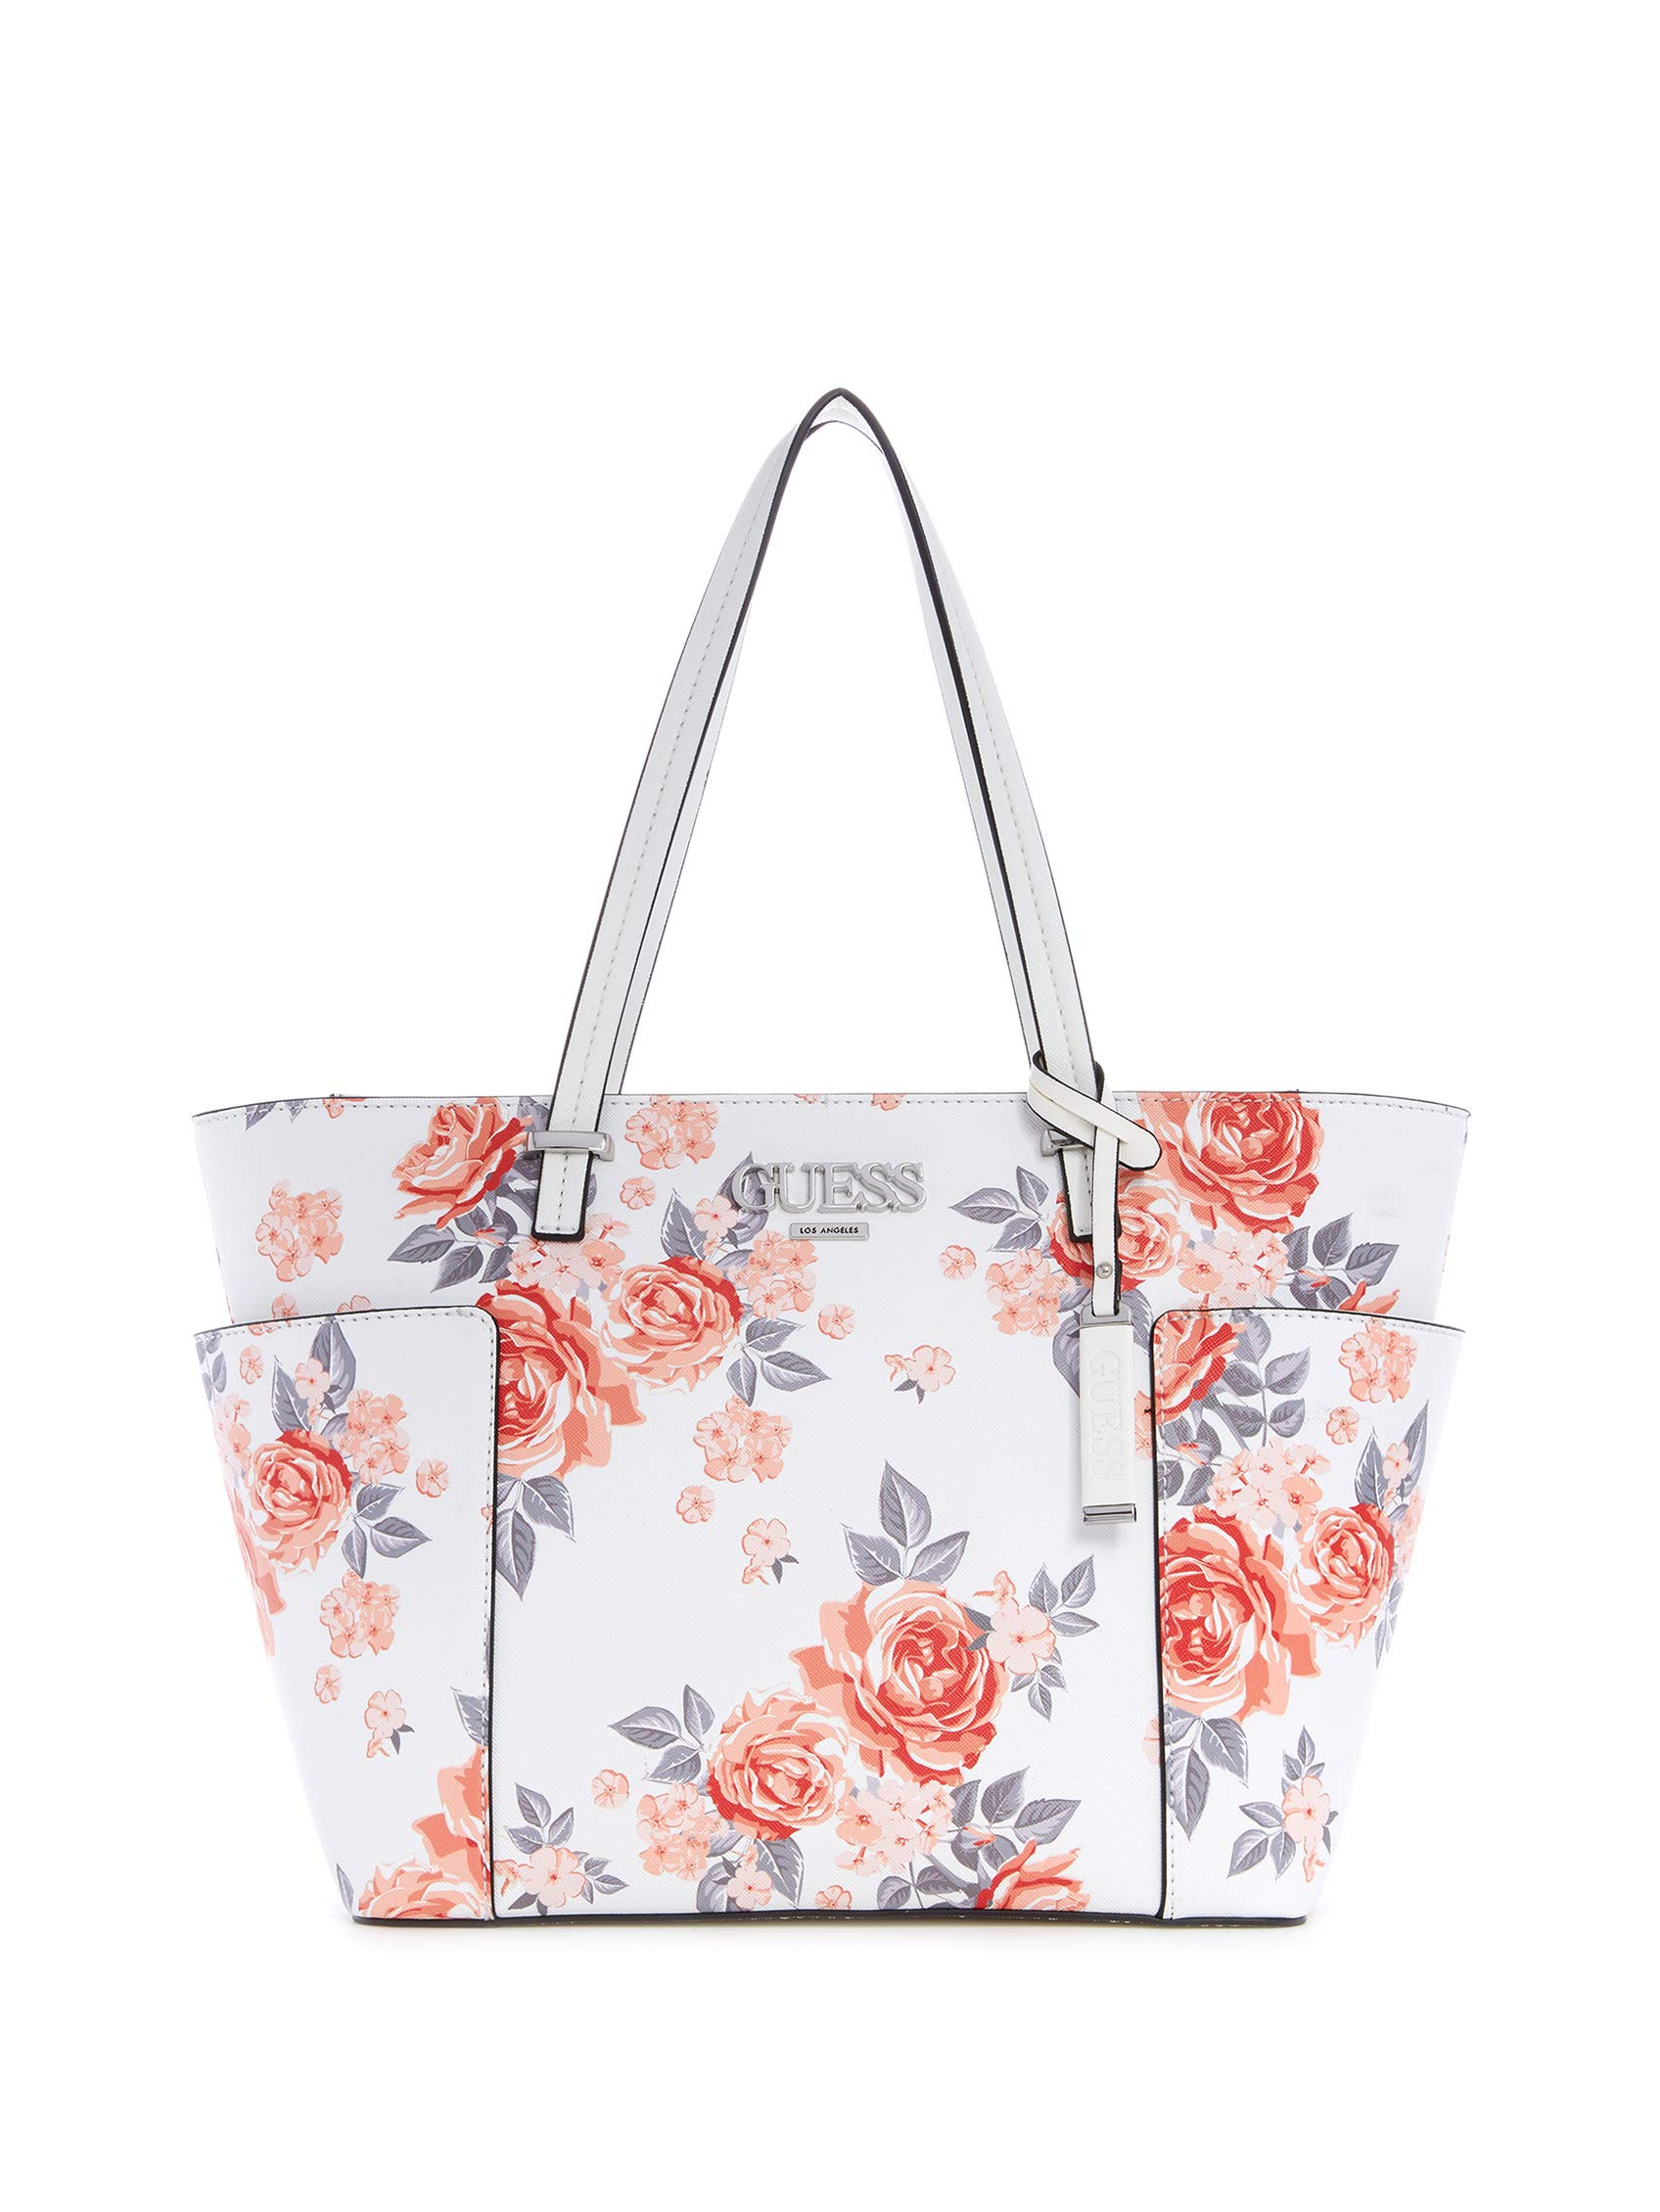 GUESS Factory Women/'s Misay Floral Tote